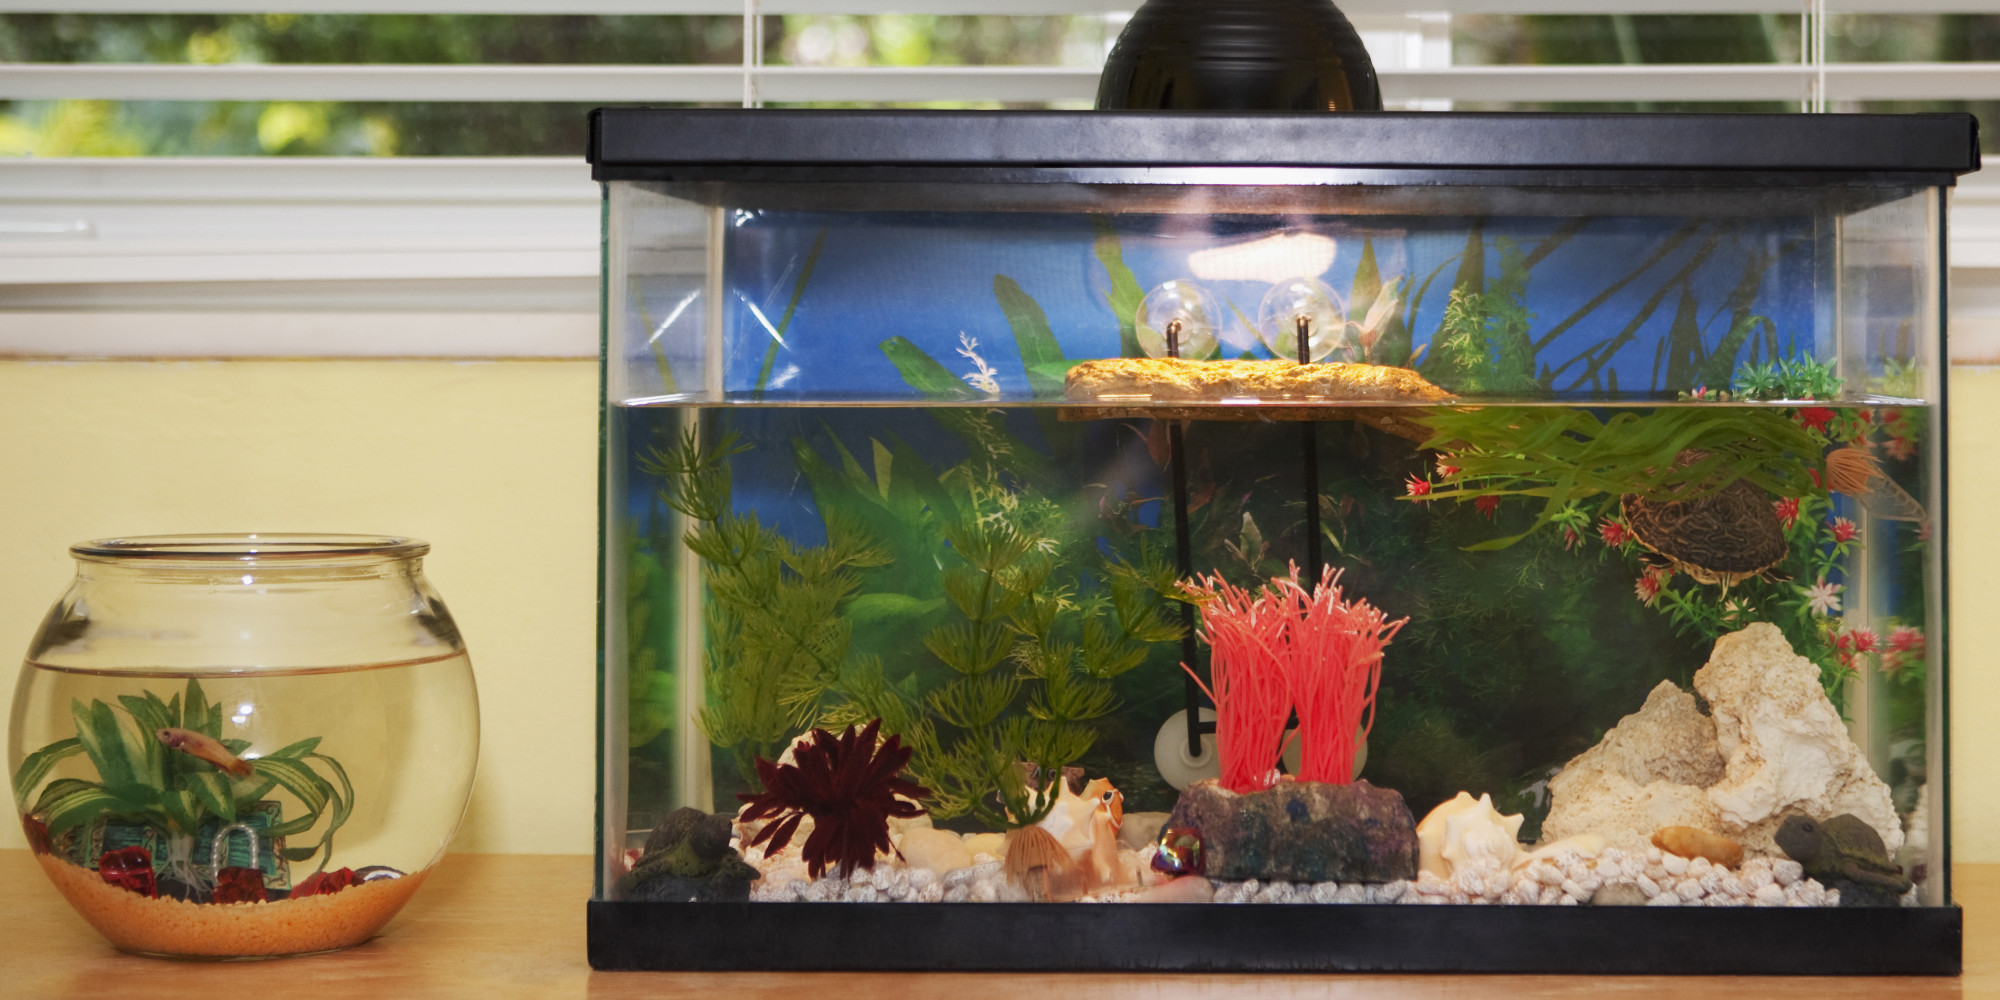 Mycobacterium Marinum Infections From Aquariums May Be